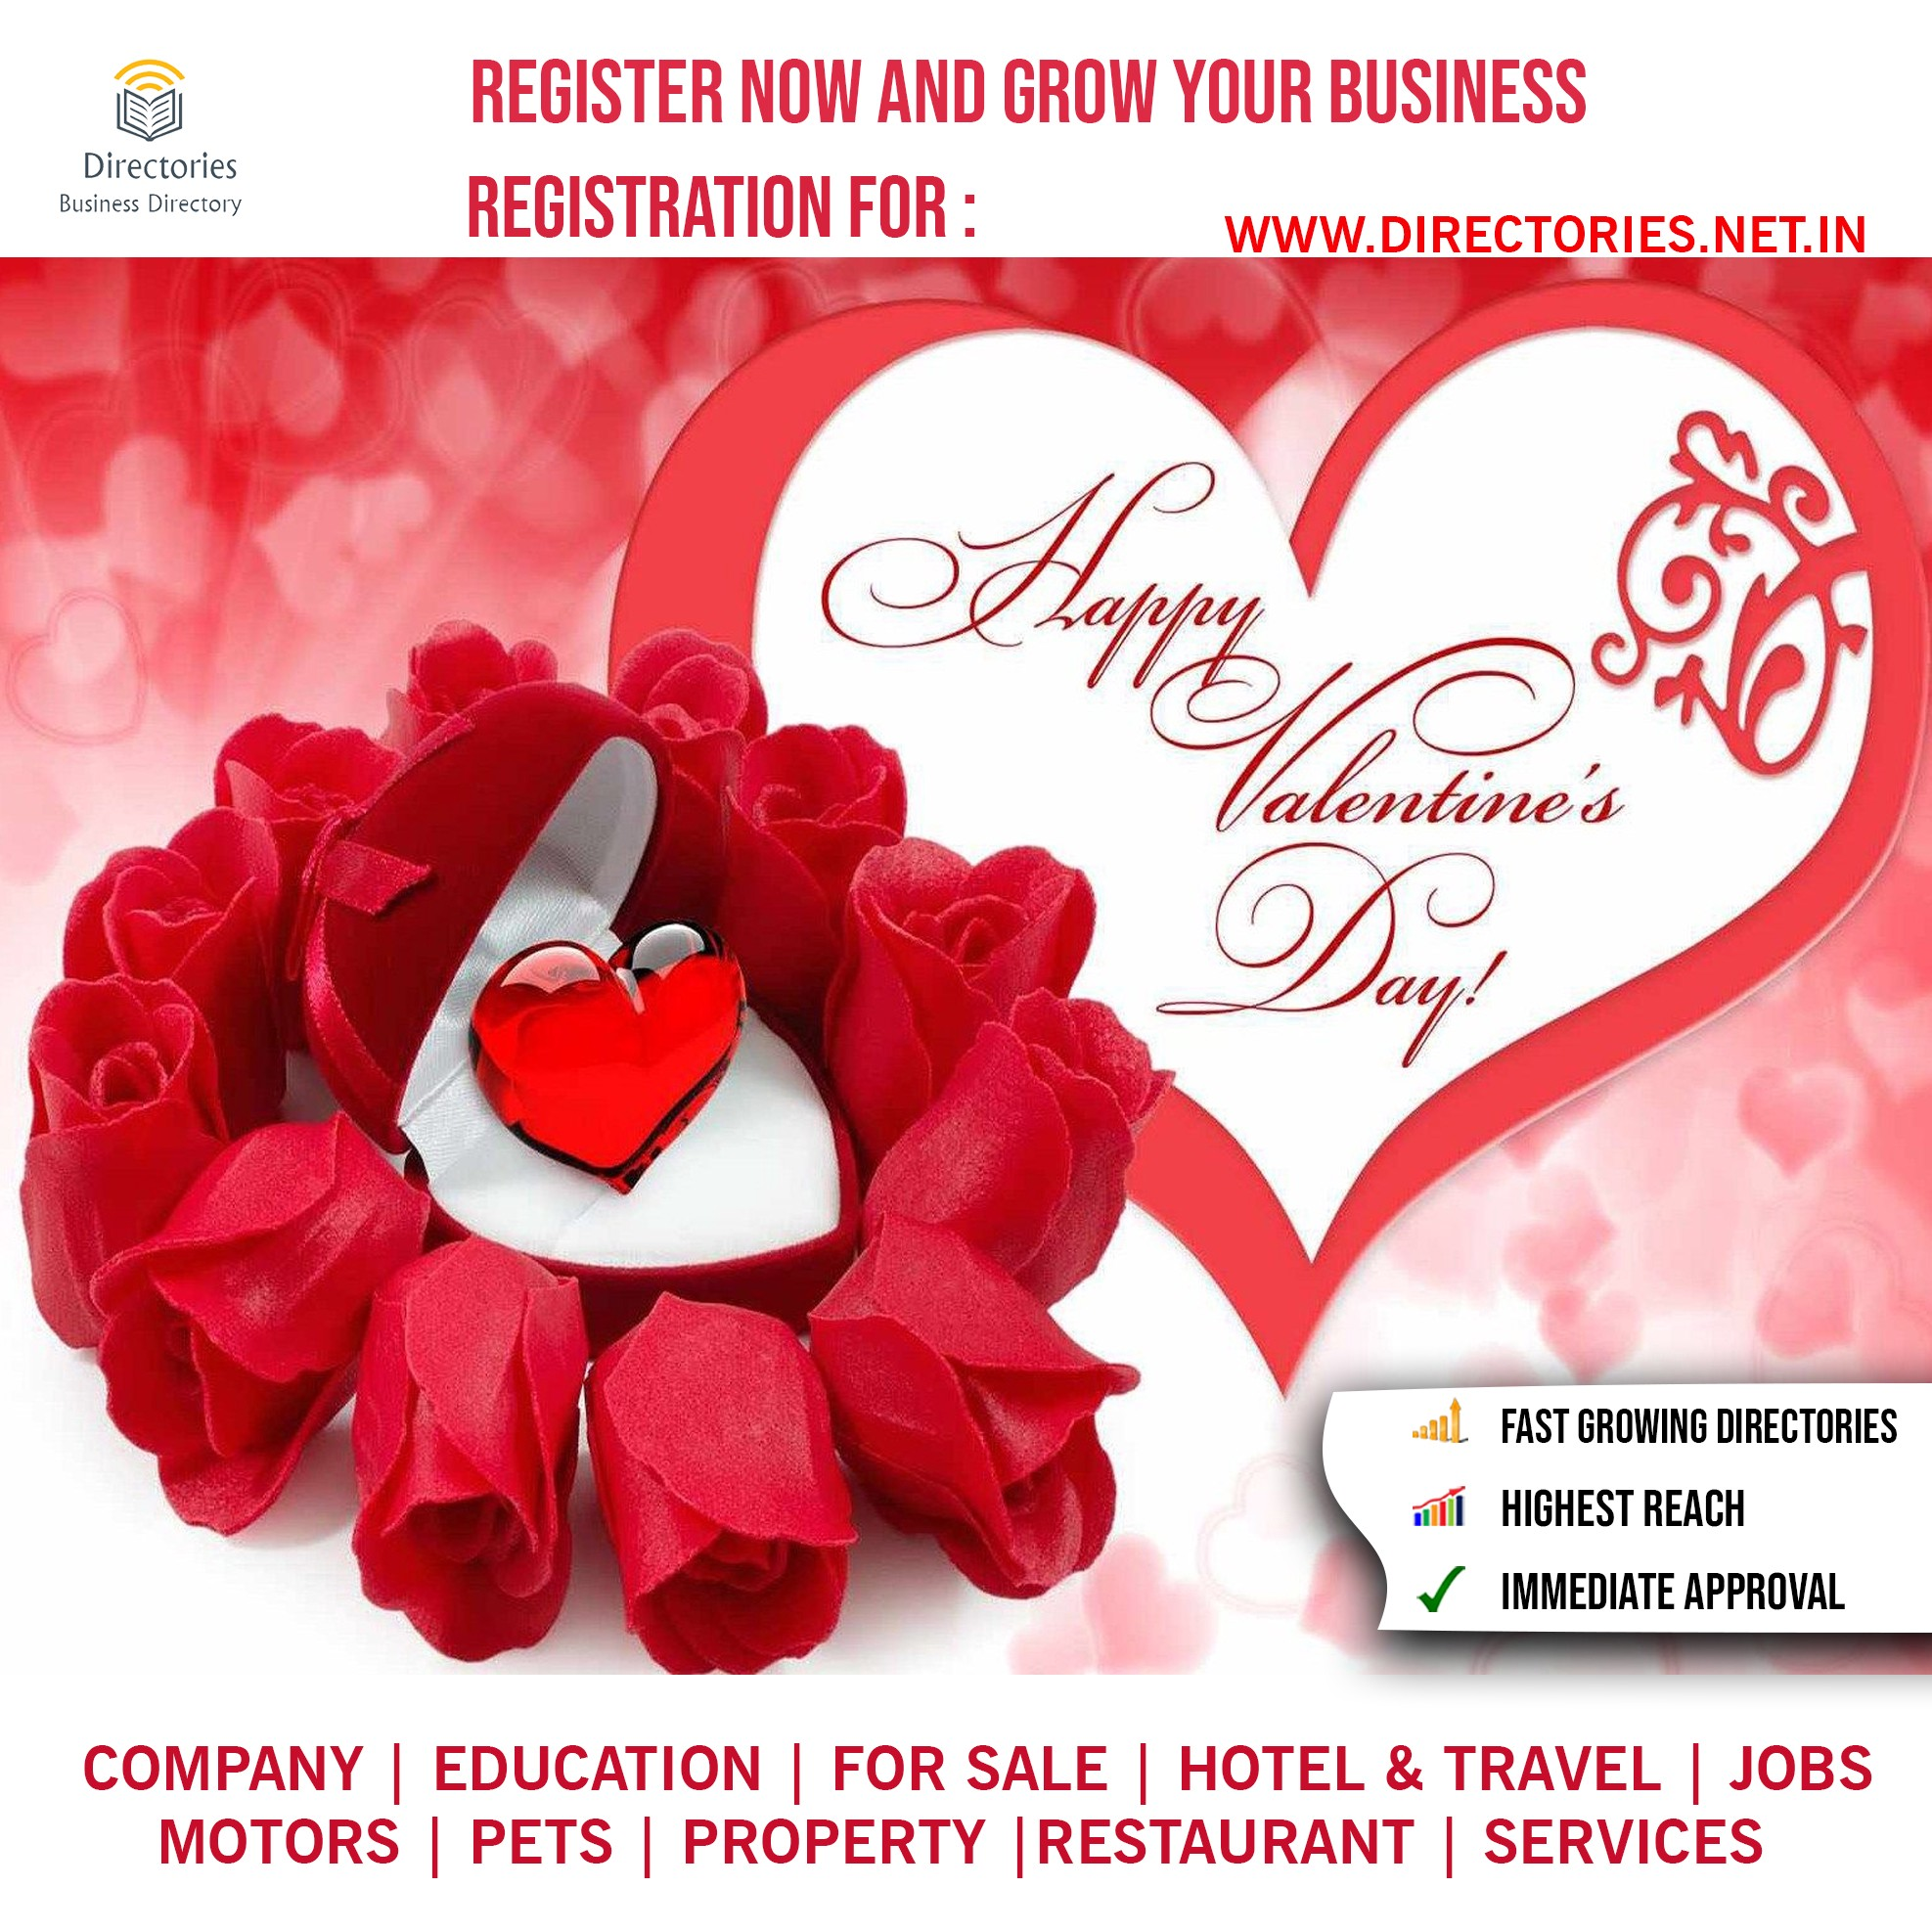 Happy Valentines Day Register Now And Grow Your Business By Icore Directories Medium